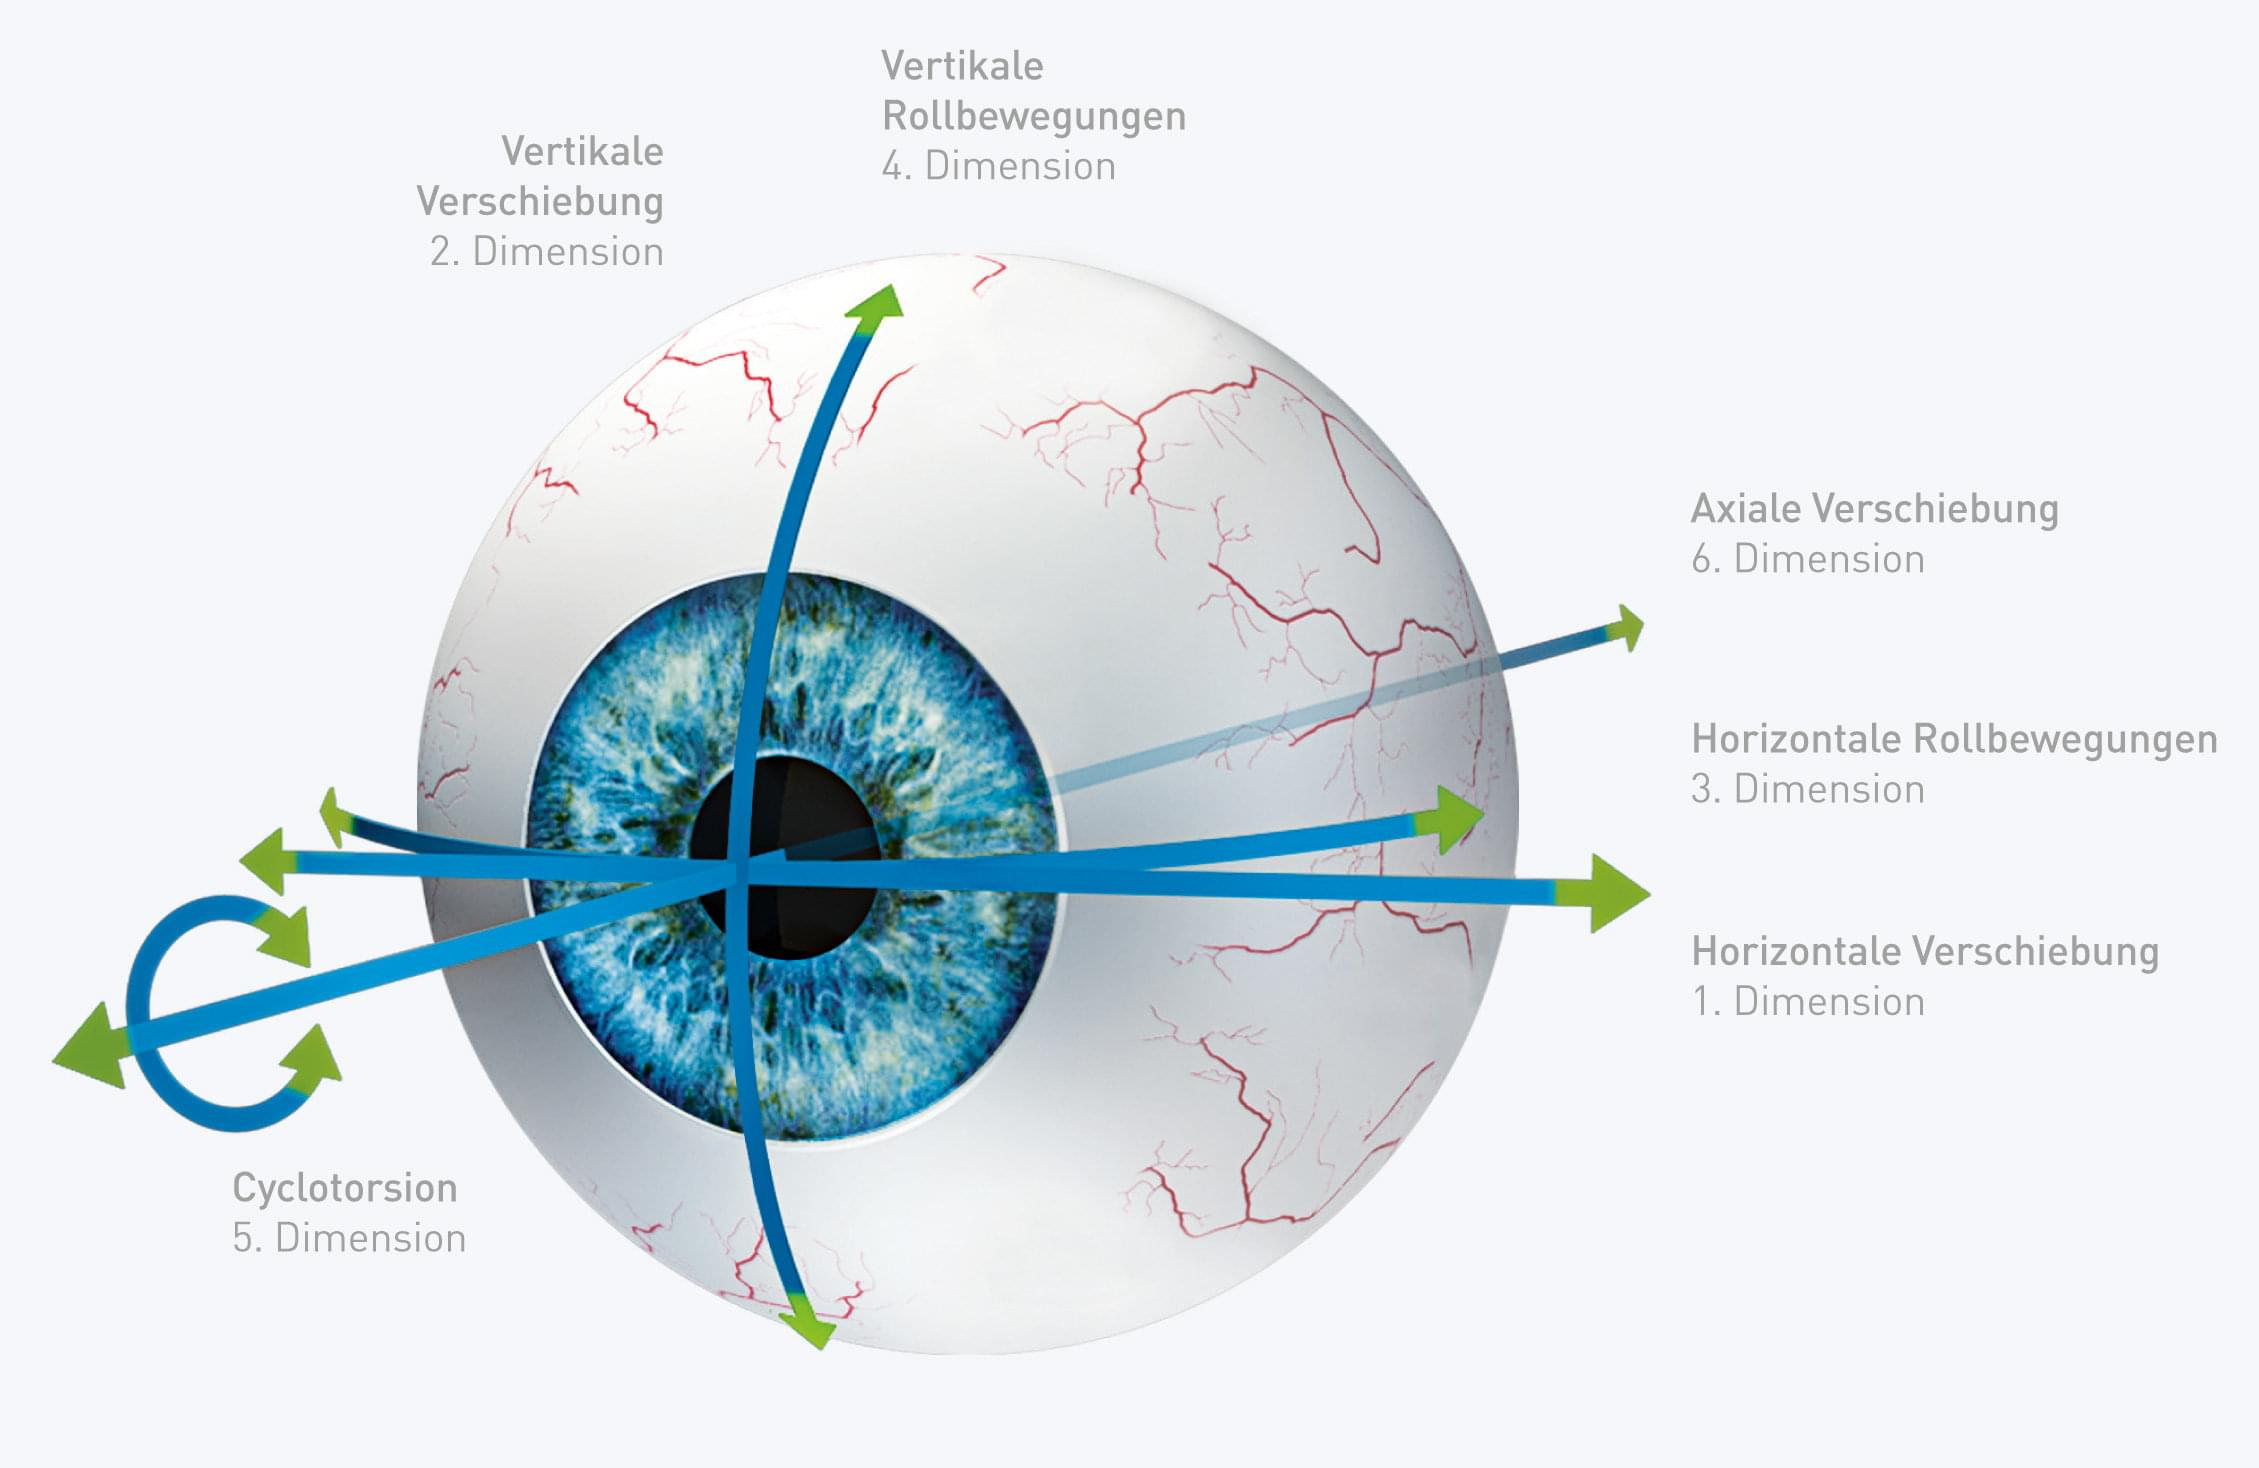 Eye-model with visualizing of the six dimensions